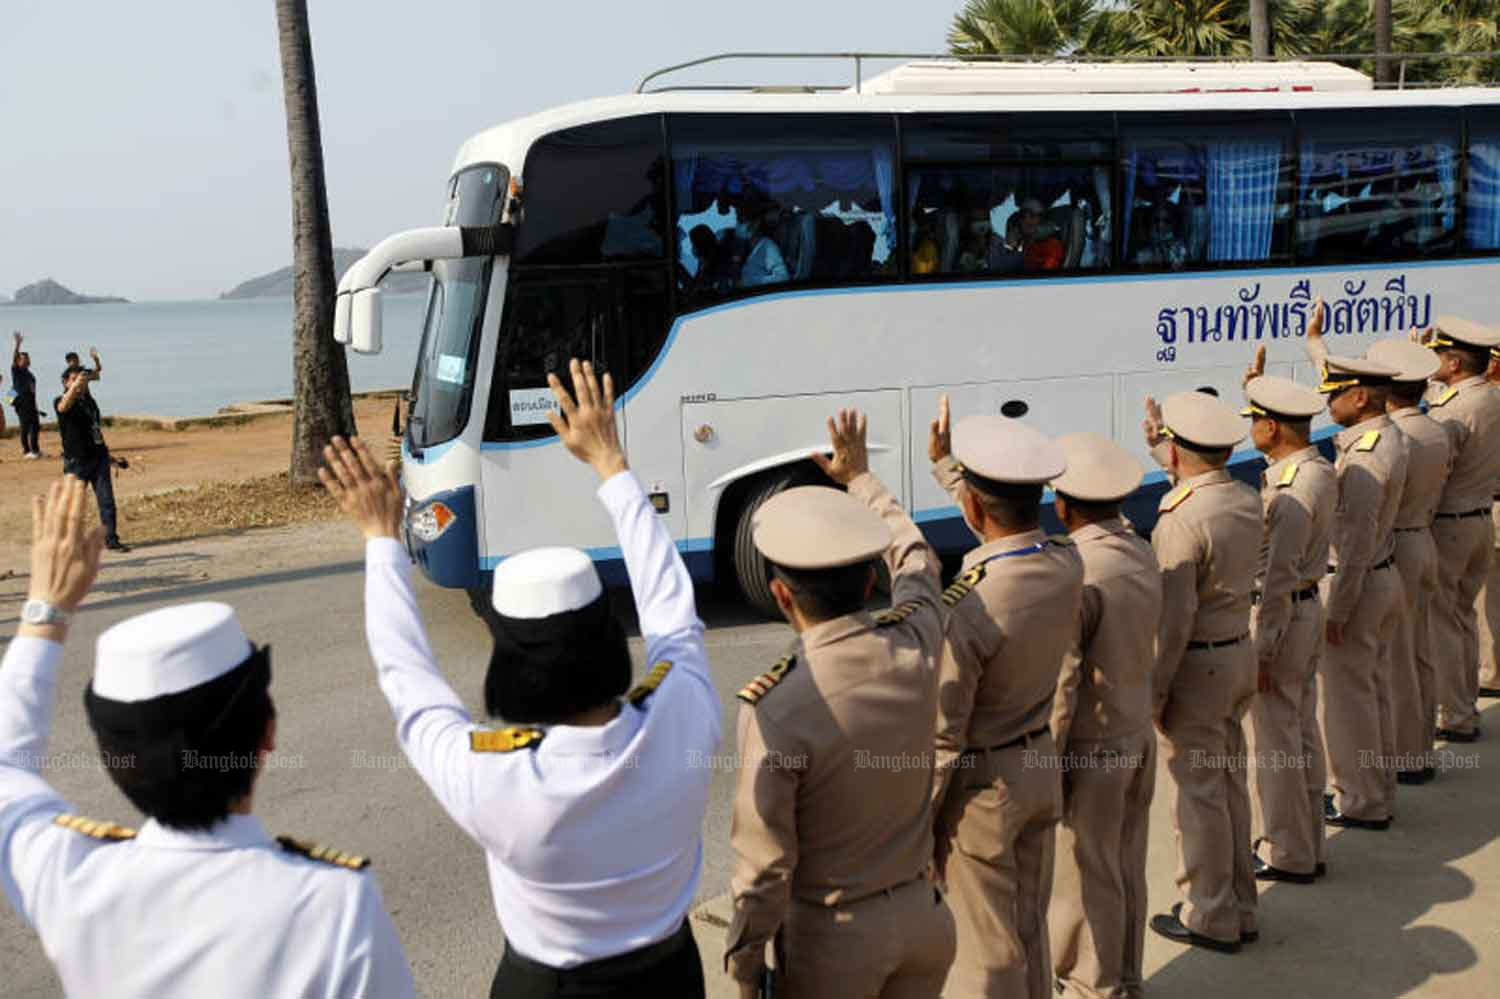 Naval officers see off 137 returnees from Wuhan after their 14-day quarantine ended at the Sattahip naval base in Chon Buri province on Wednesday. (Photo by Wichan Charoenkiatpakul)